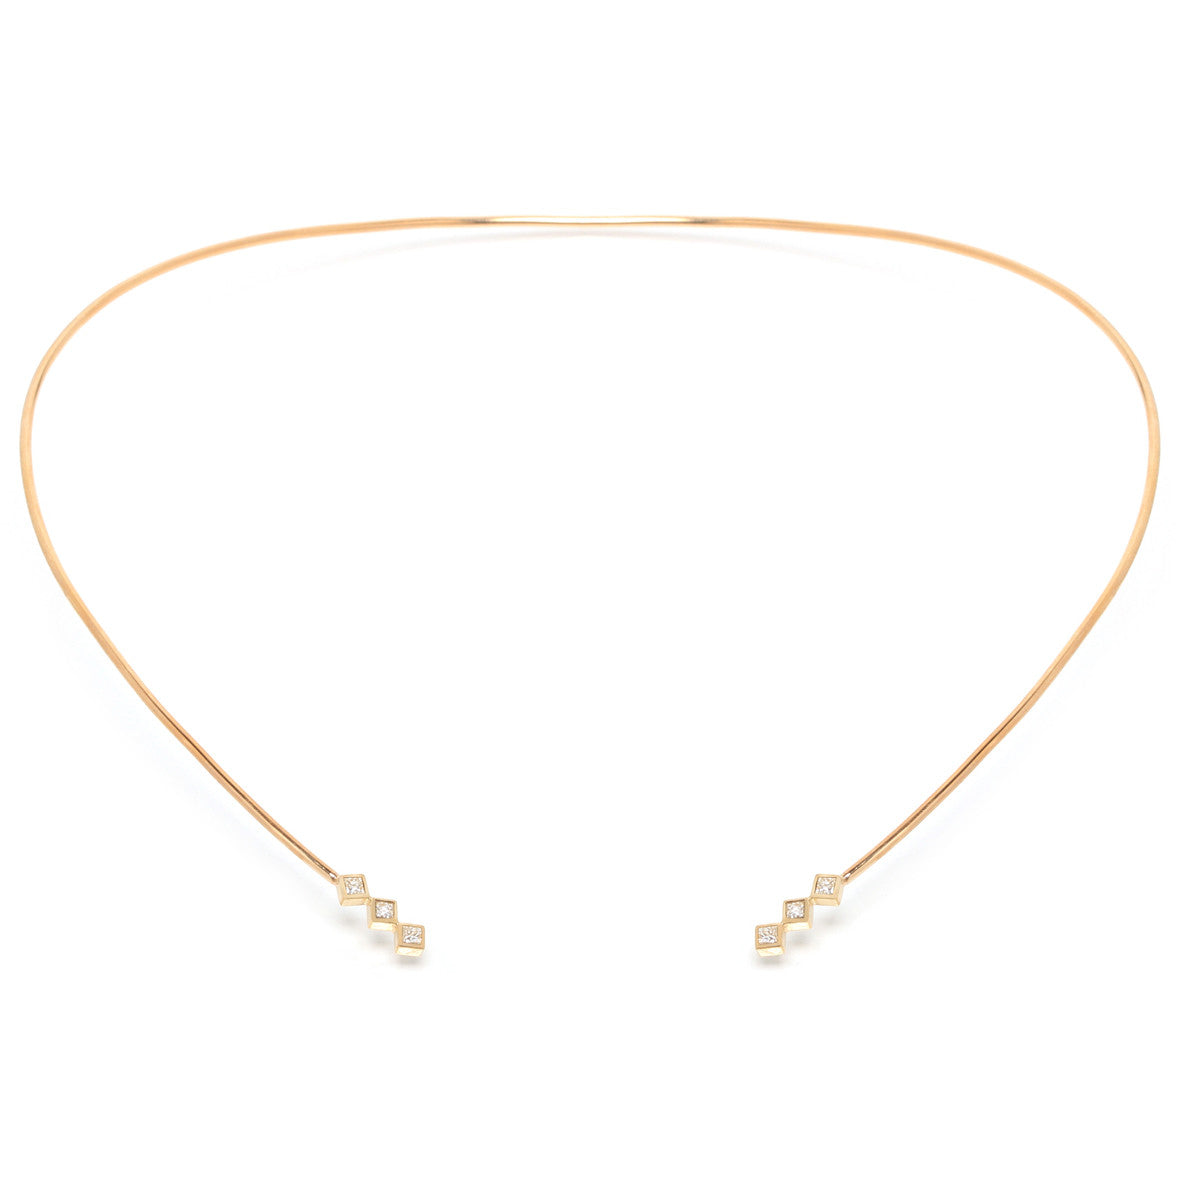 Zoë Chicco 14kt Yellow Gold 6 Princess Cut White Diamond Collar Necklace